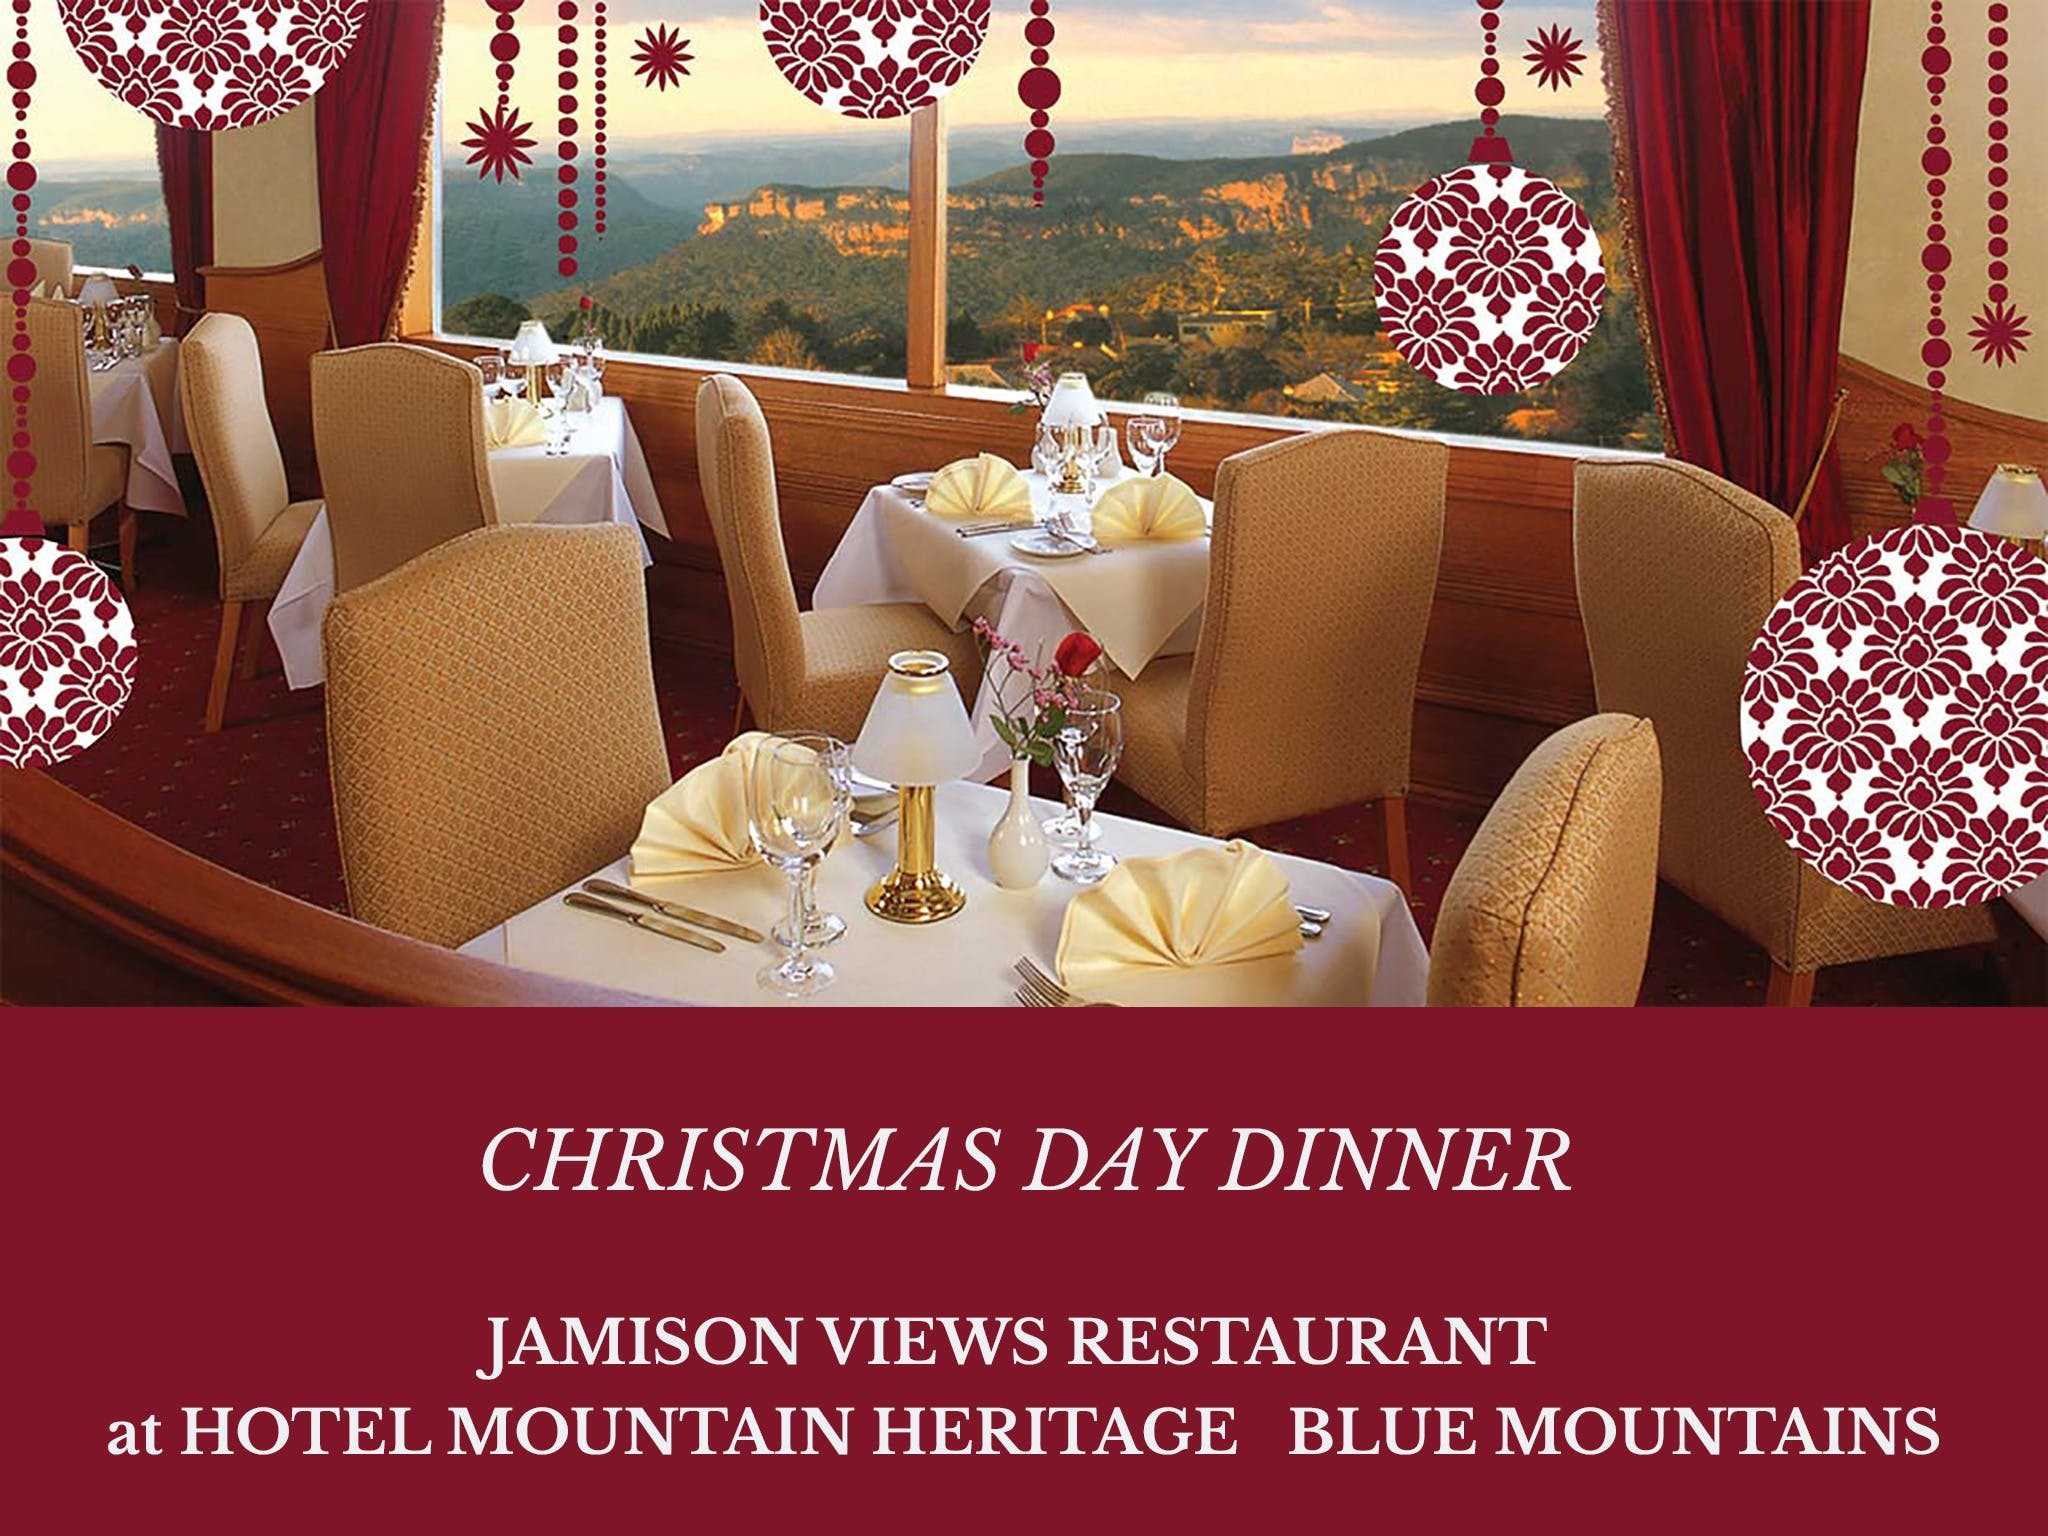 Christmas Day Dinner Hotel Mountain Heritage - Pubs and Clubs